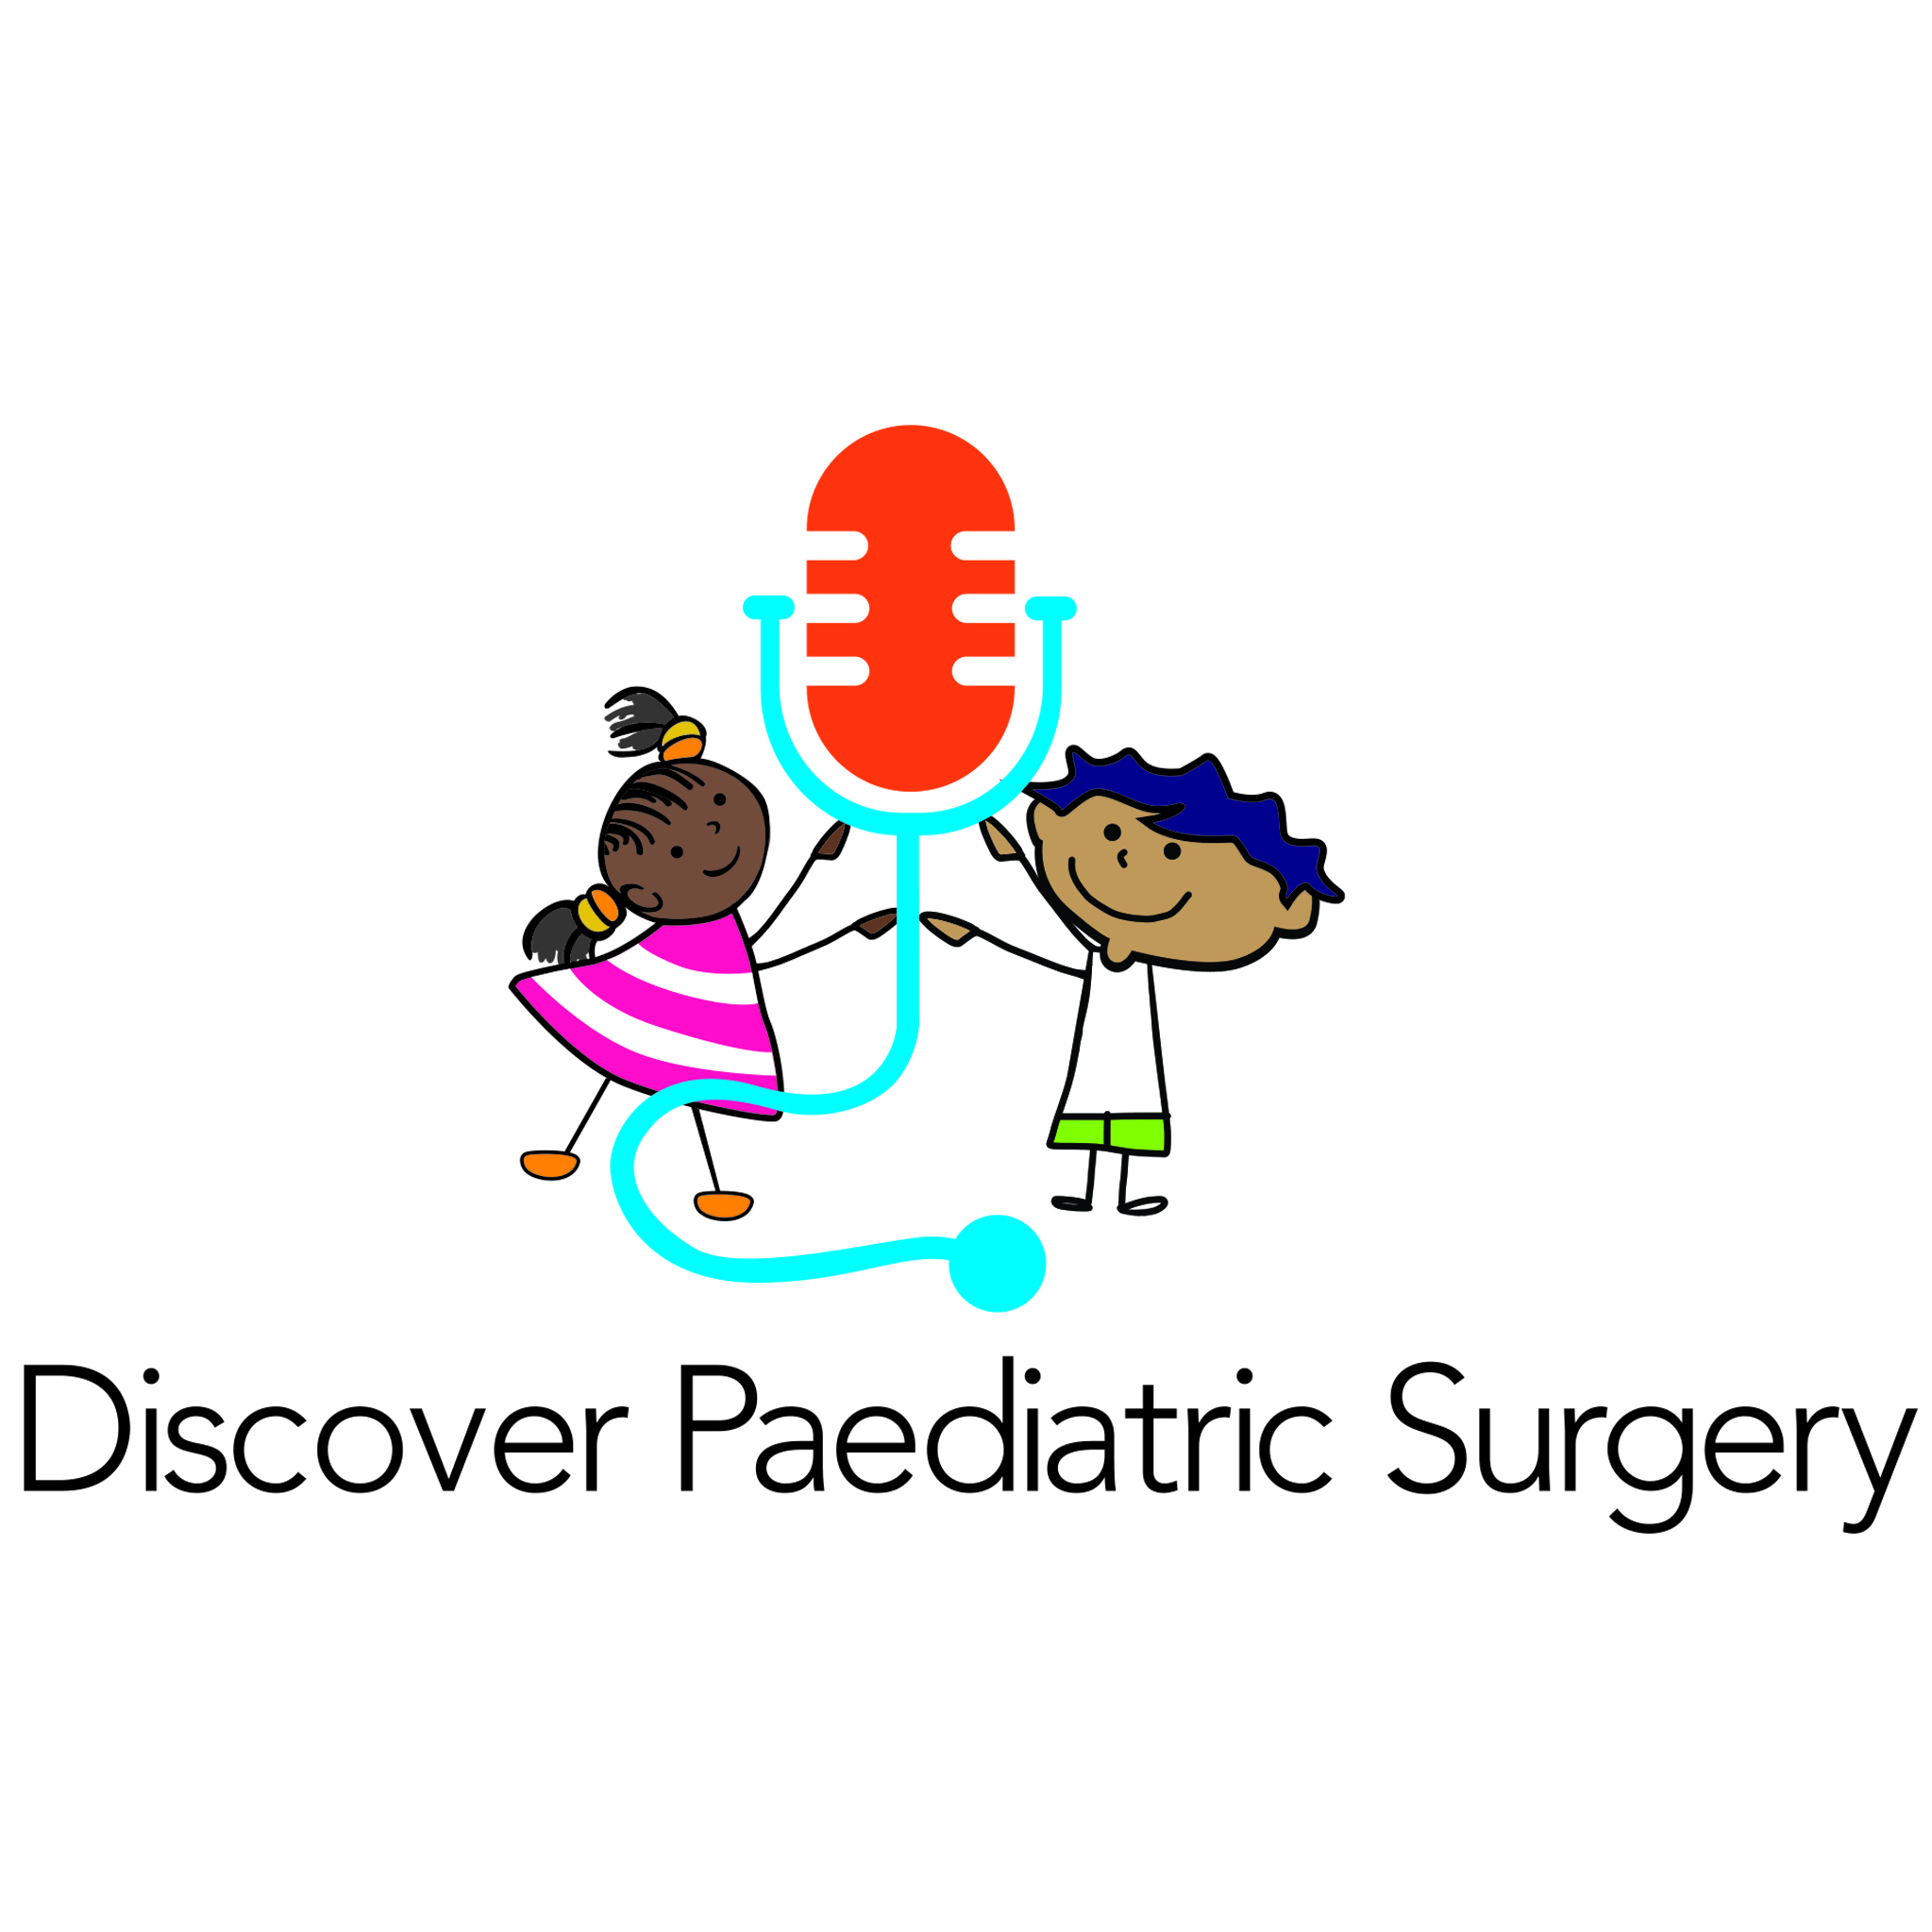 Home Discover Paediatric Surgery